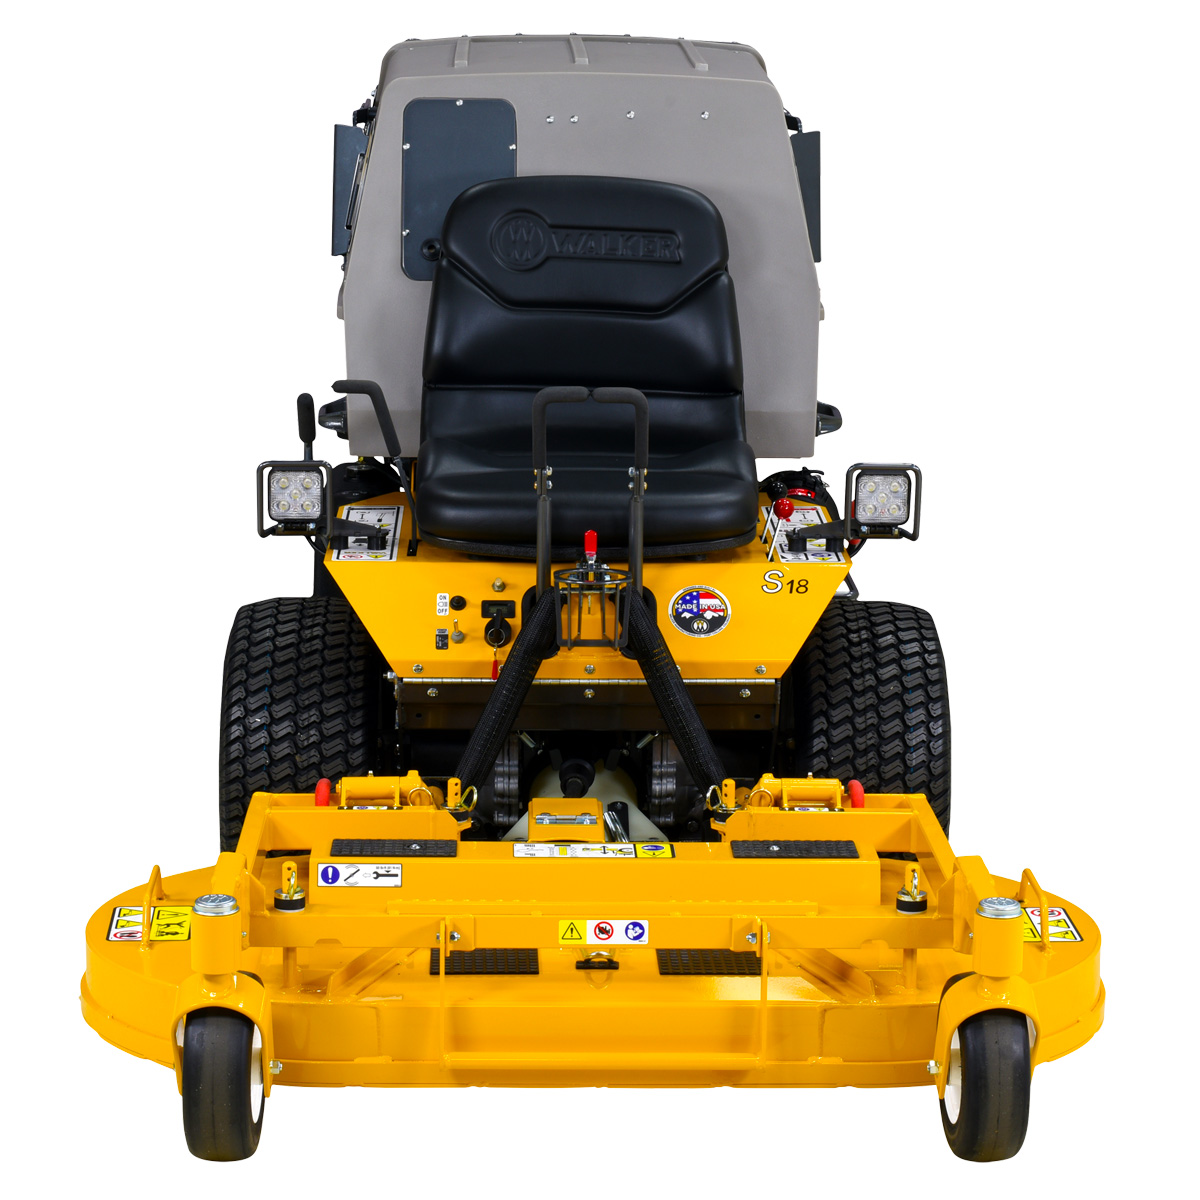 Walker Mower MS - narrow profile for tight areas